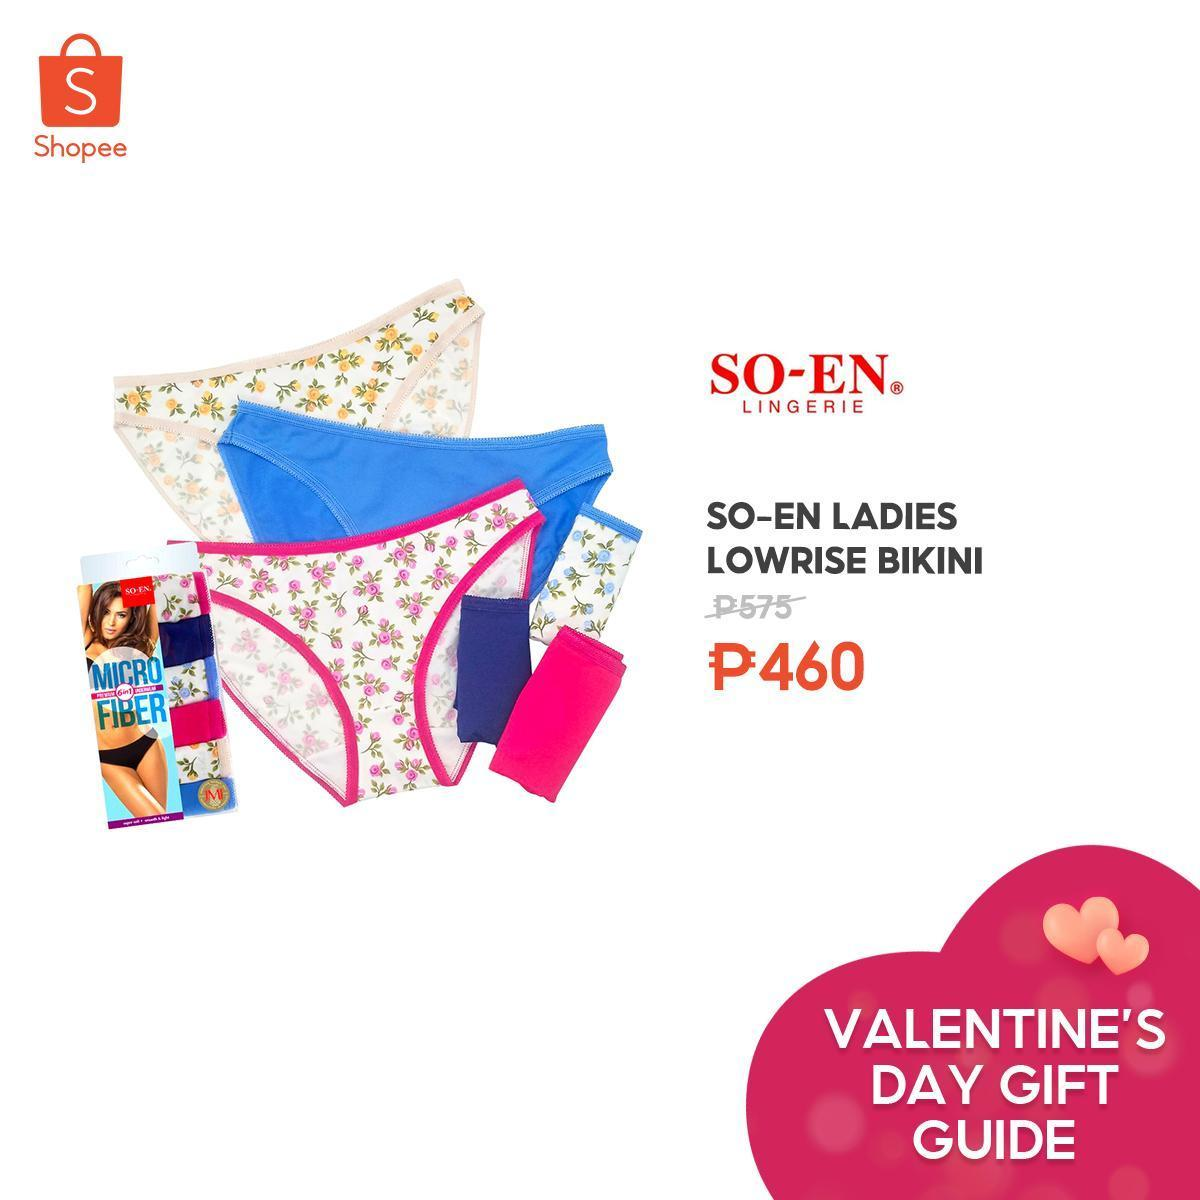 Find The Sweetest Gifts At Shopee's Valentine's Day Sale